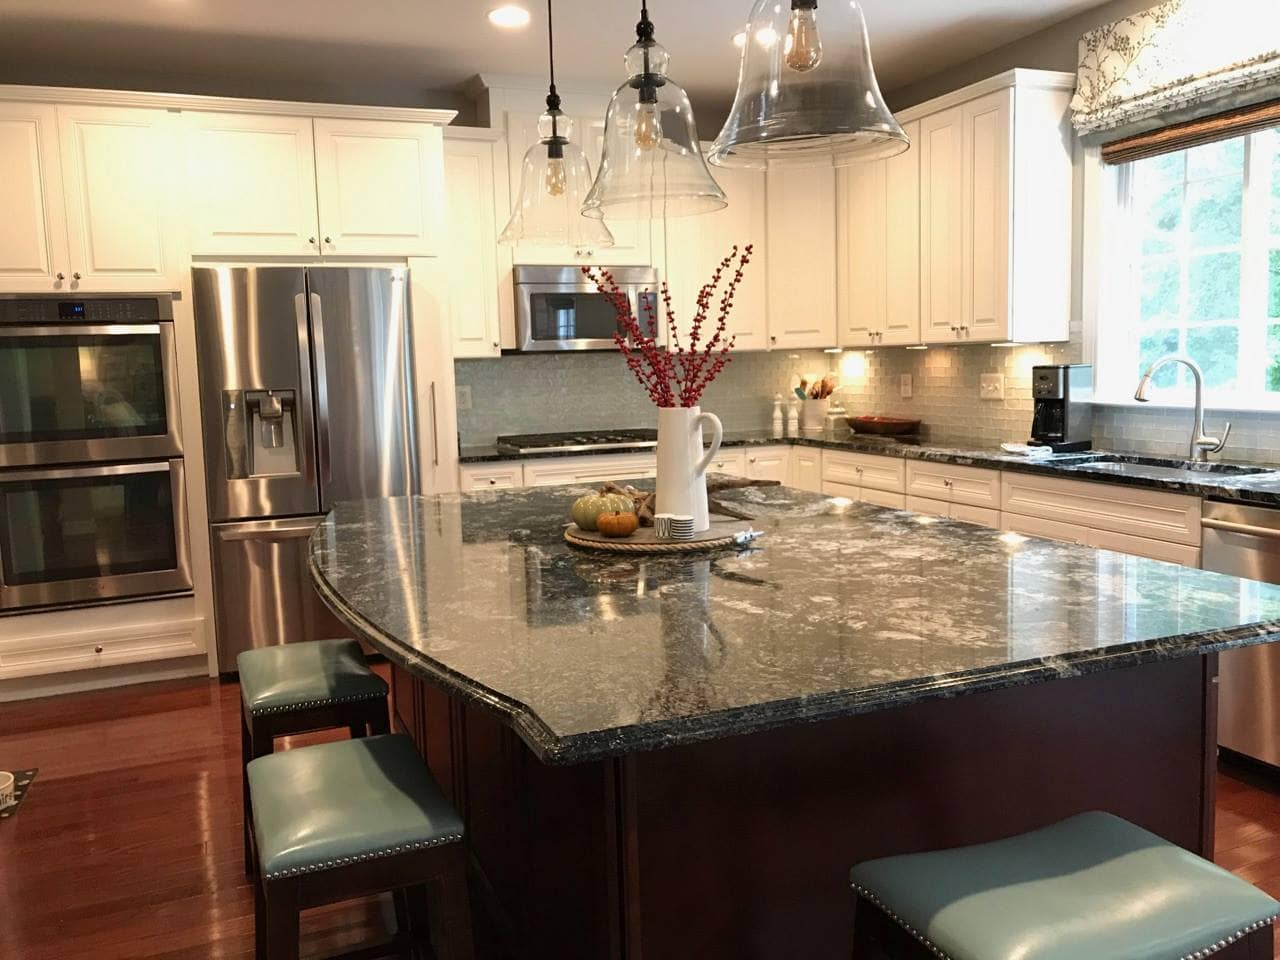 Cabinet Painting in Chantilly, VA